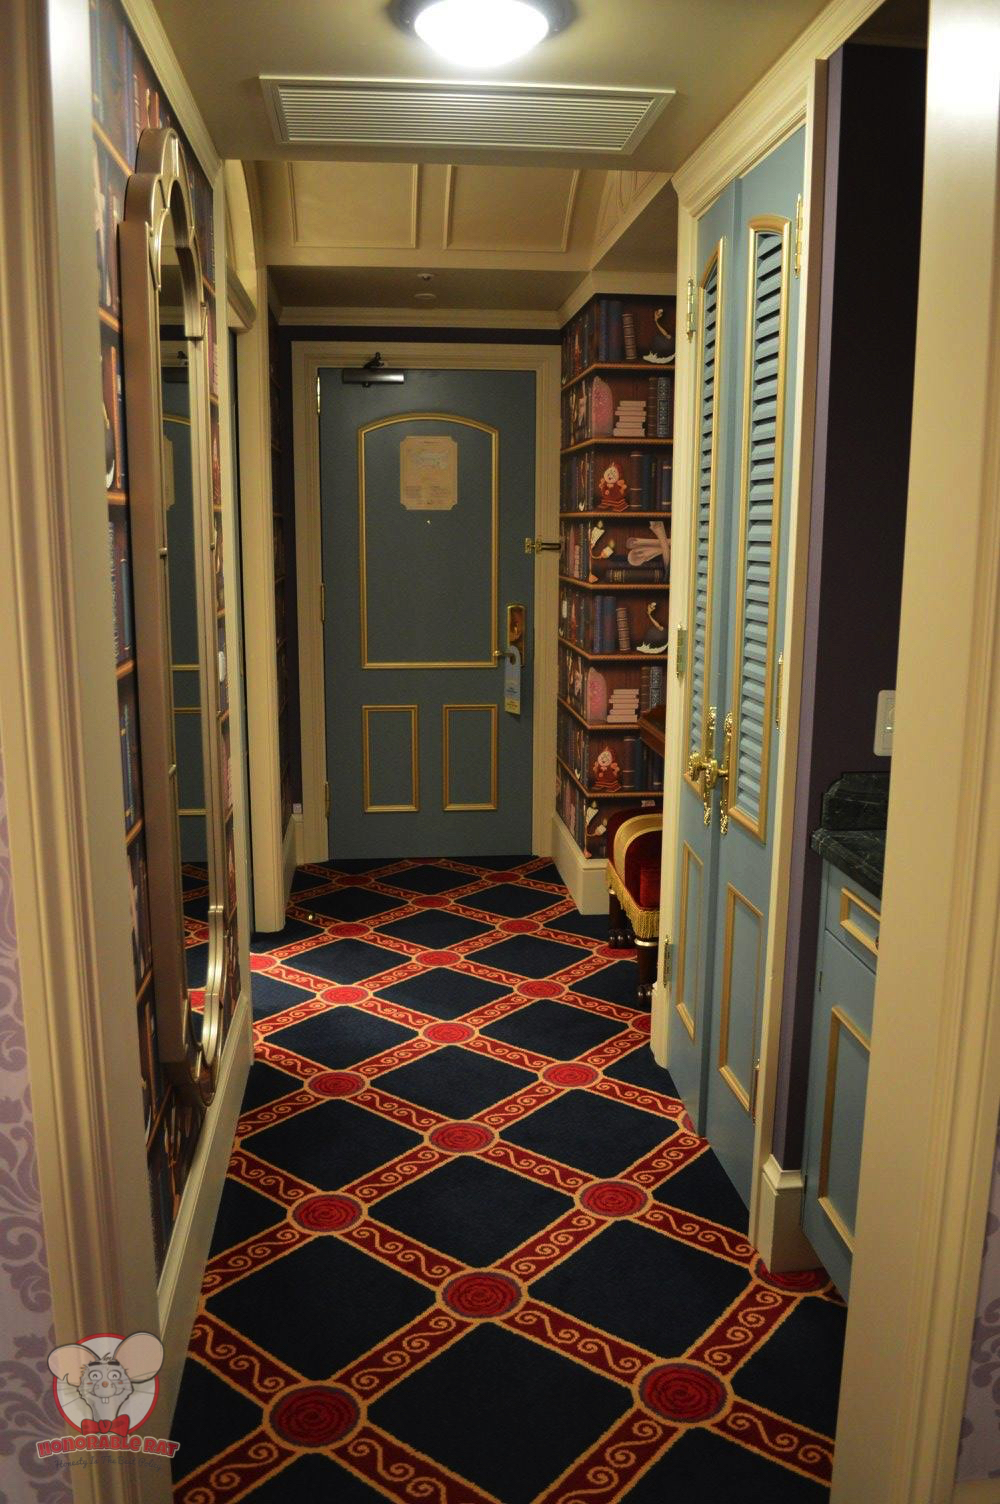 The entrance of this room